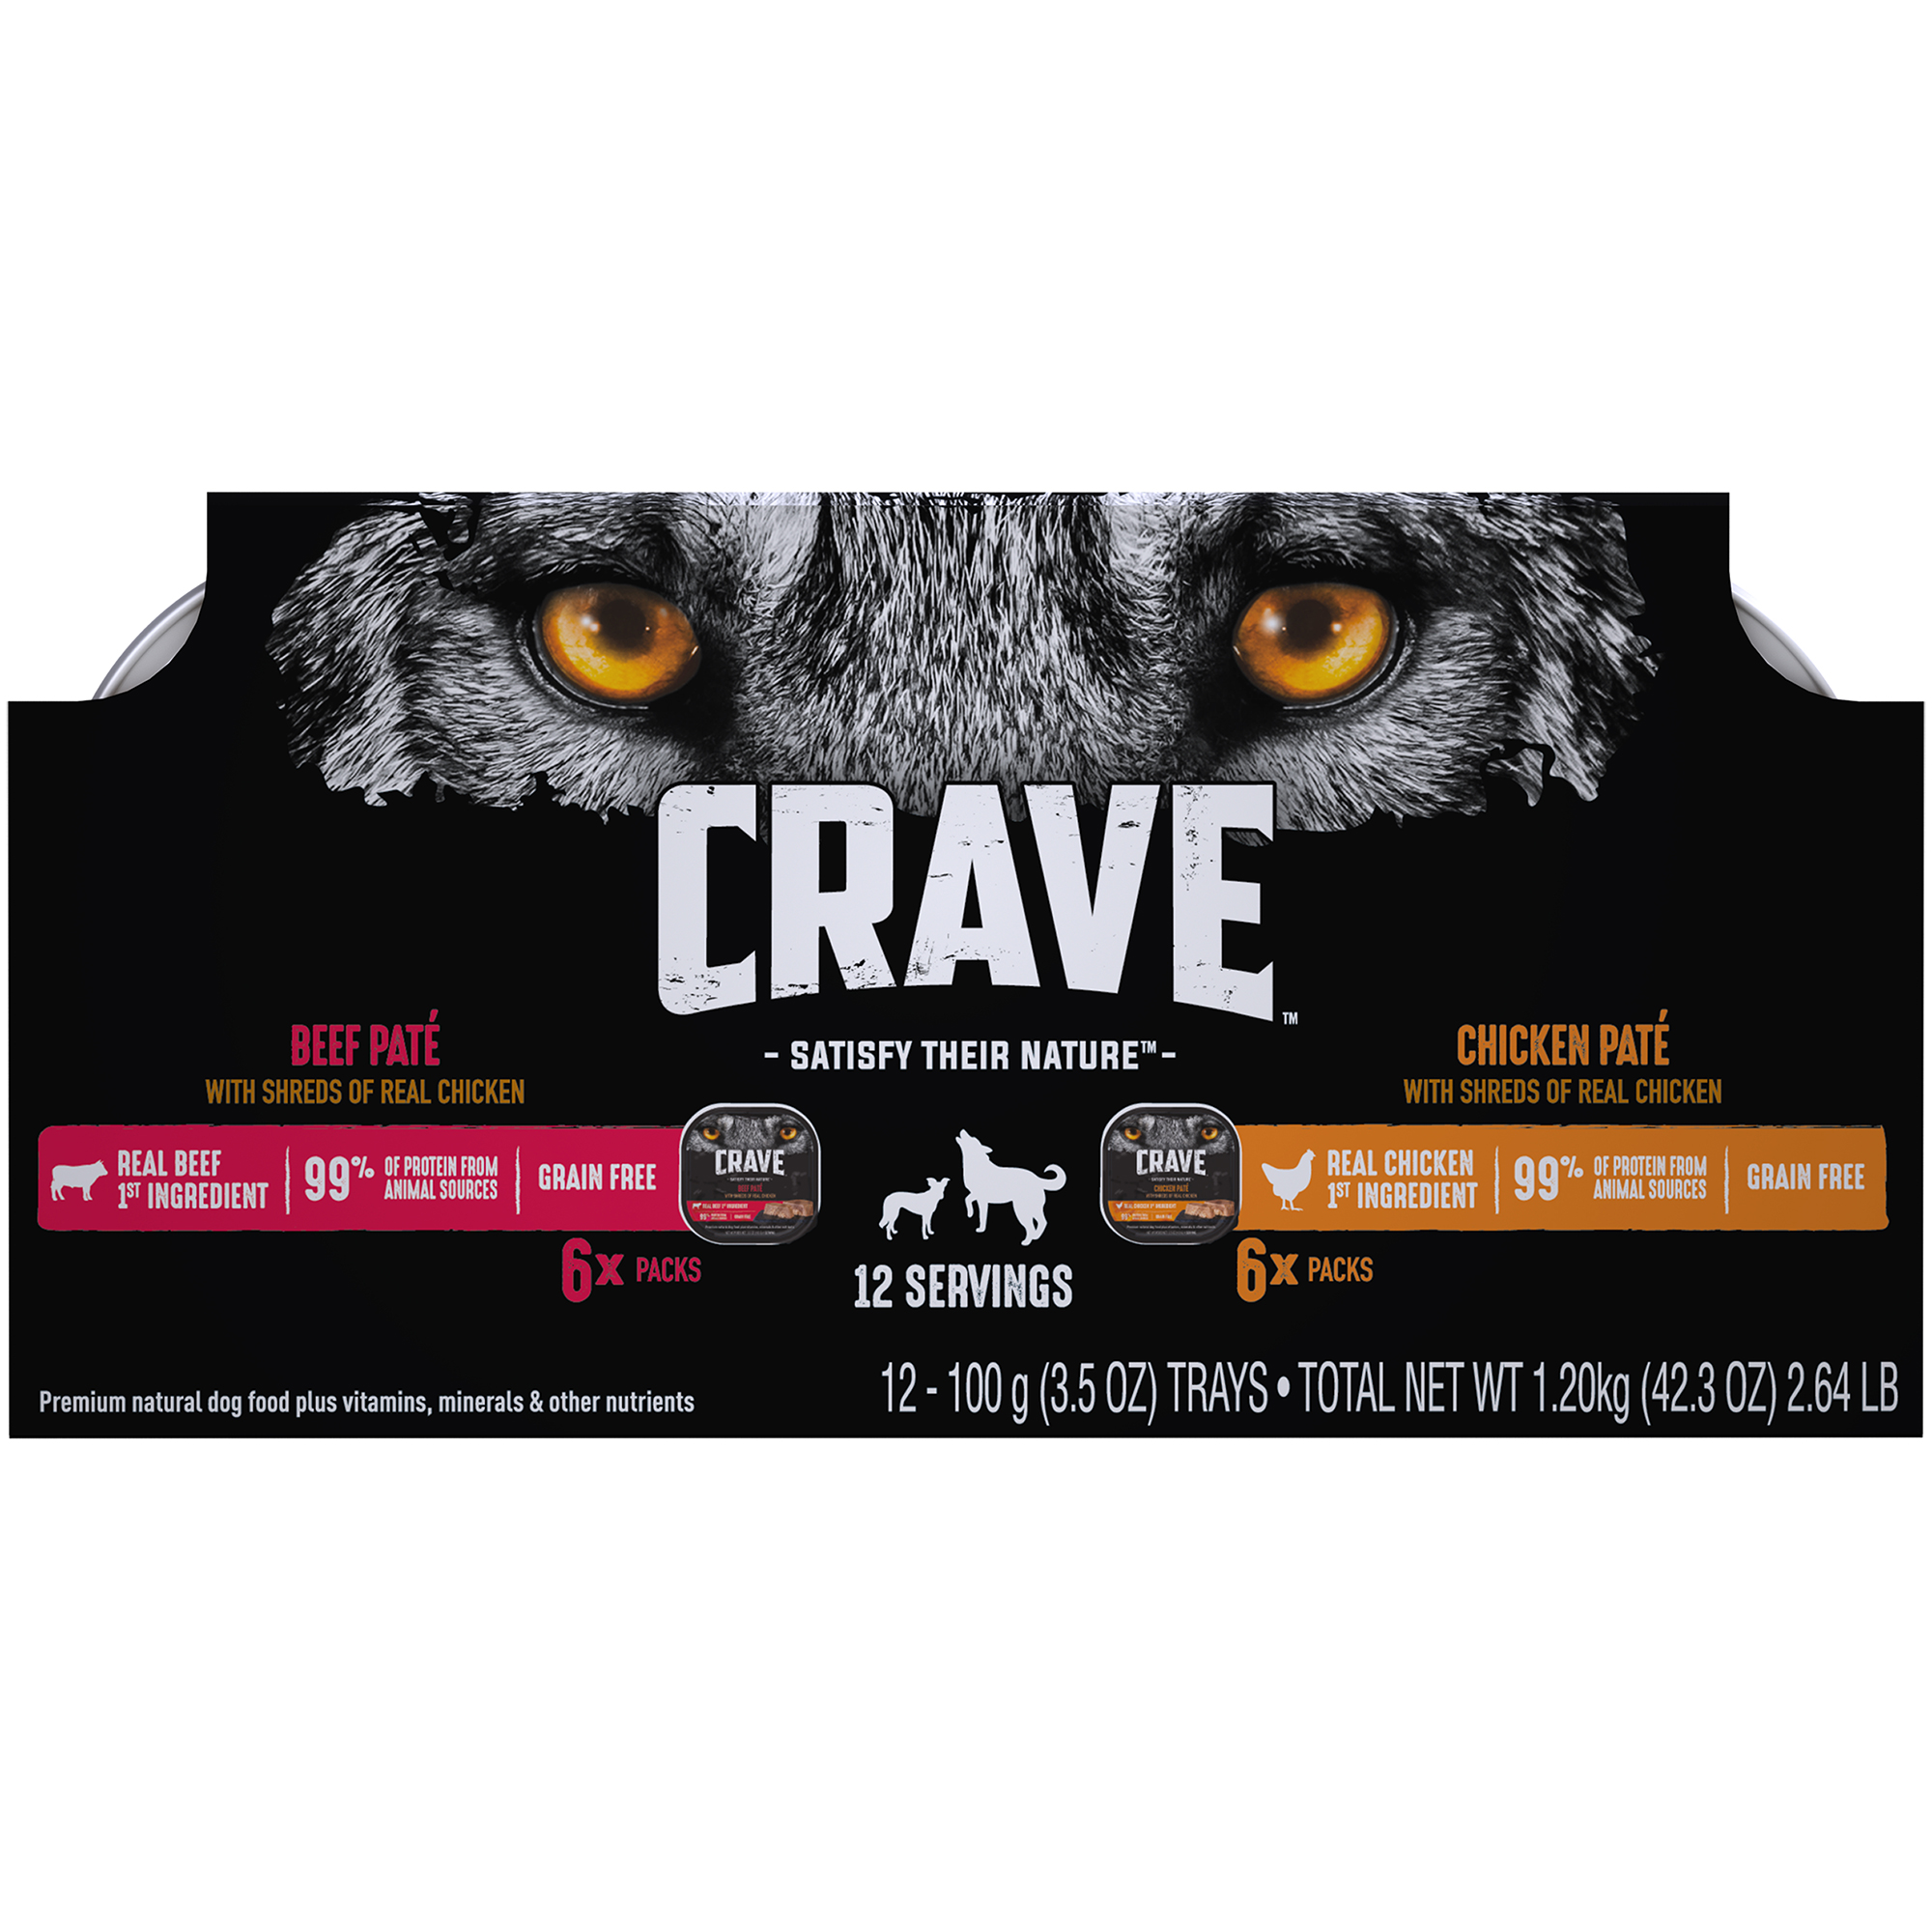 CRAVE Grain Free Adult Wet Dog Food Chicken & Beef Pates with Shreds of Real Chicken Variety Pack, (12) 3.5 oz. Trays